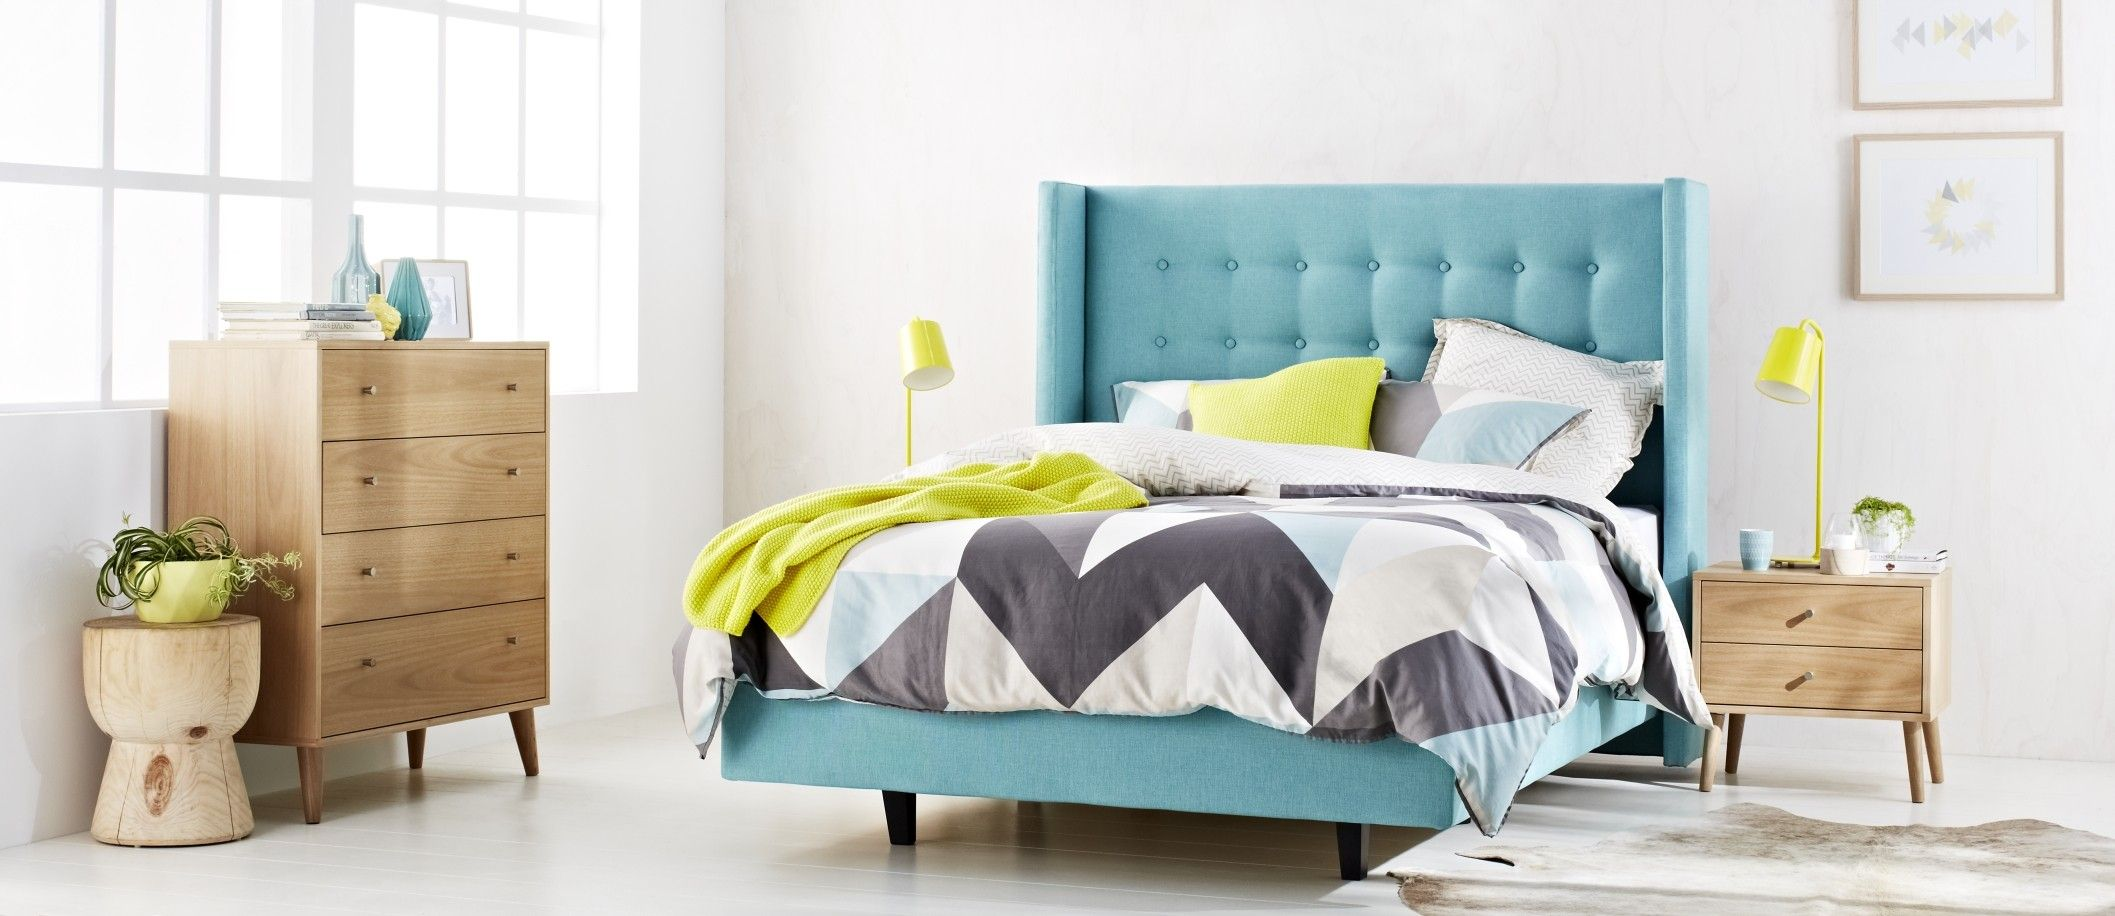 Hamilton Bedroom Furniture The Hamiltons Eye Catching Button Tufted Bedhead With Wing Detail